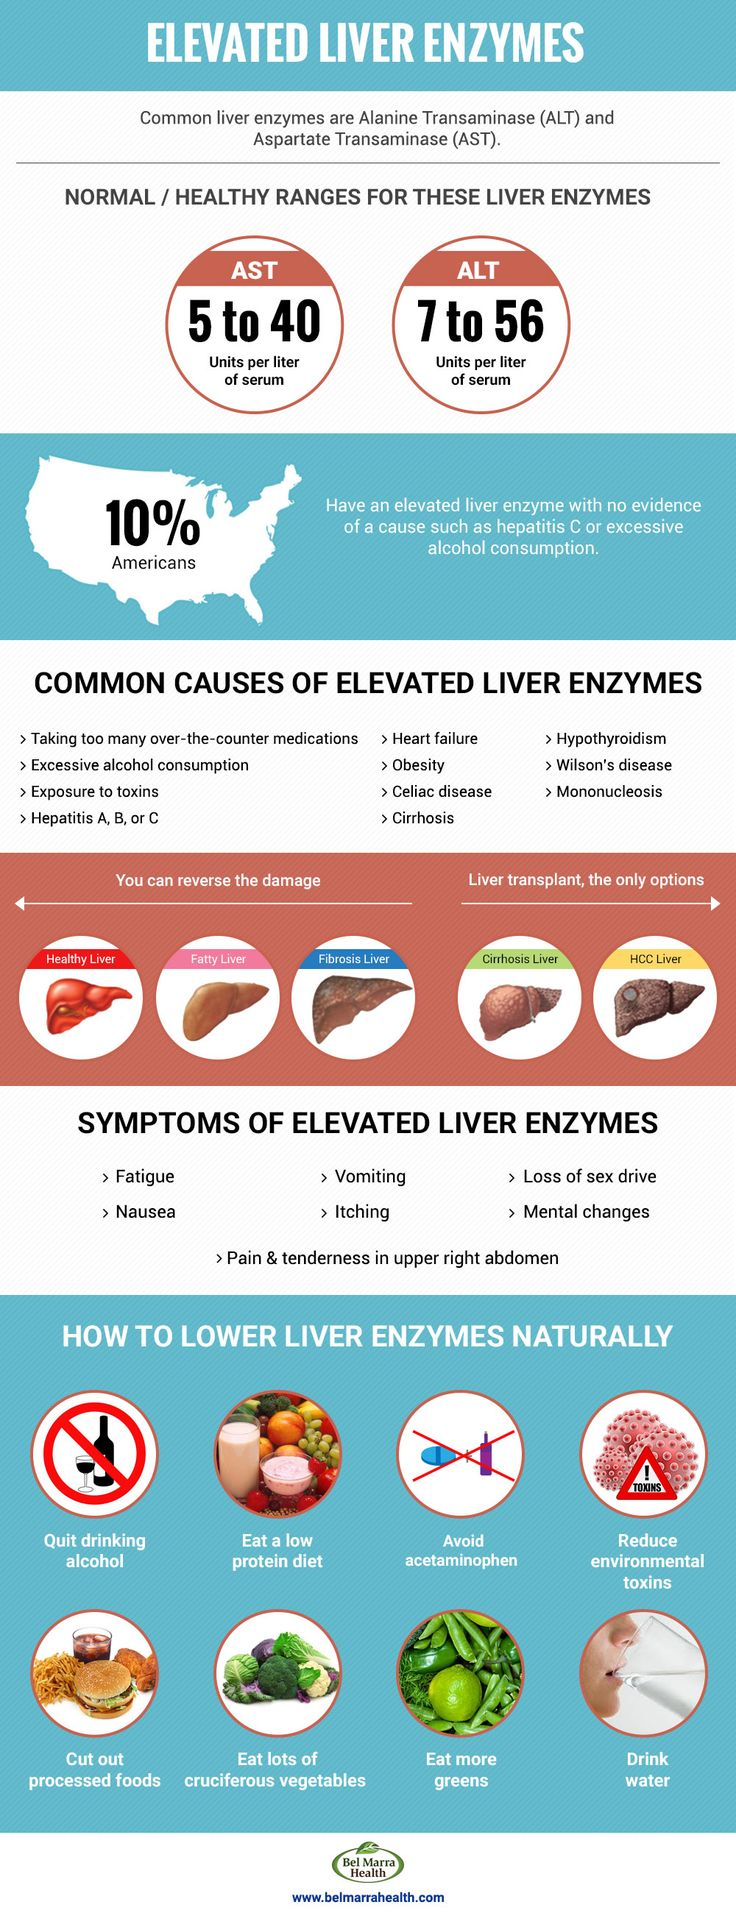 Understanding Elevated Liver Enzymes Related Reading: Elevated liver enzymes: Causes, symptoms, and treatment Elevated liver enzymes may indicate a problem with the liver. When the liver is inflamed, it releases more chemicals than normal, which can be seen in a blood test. Continue reading… Natural foods for liver repair and liver cleansing Your liver is …